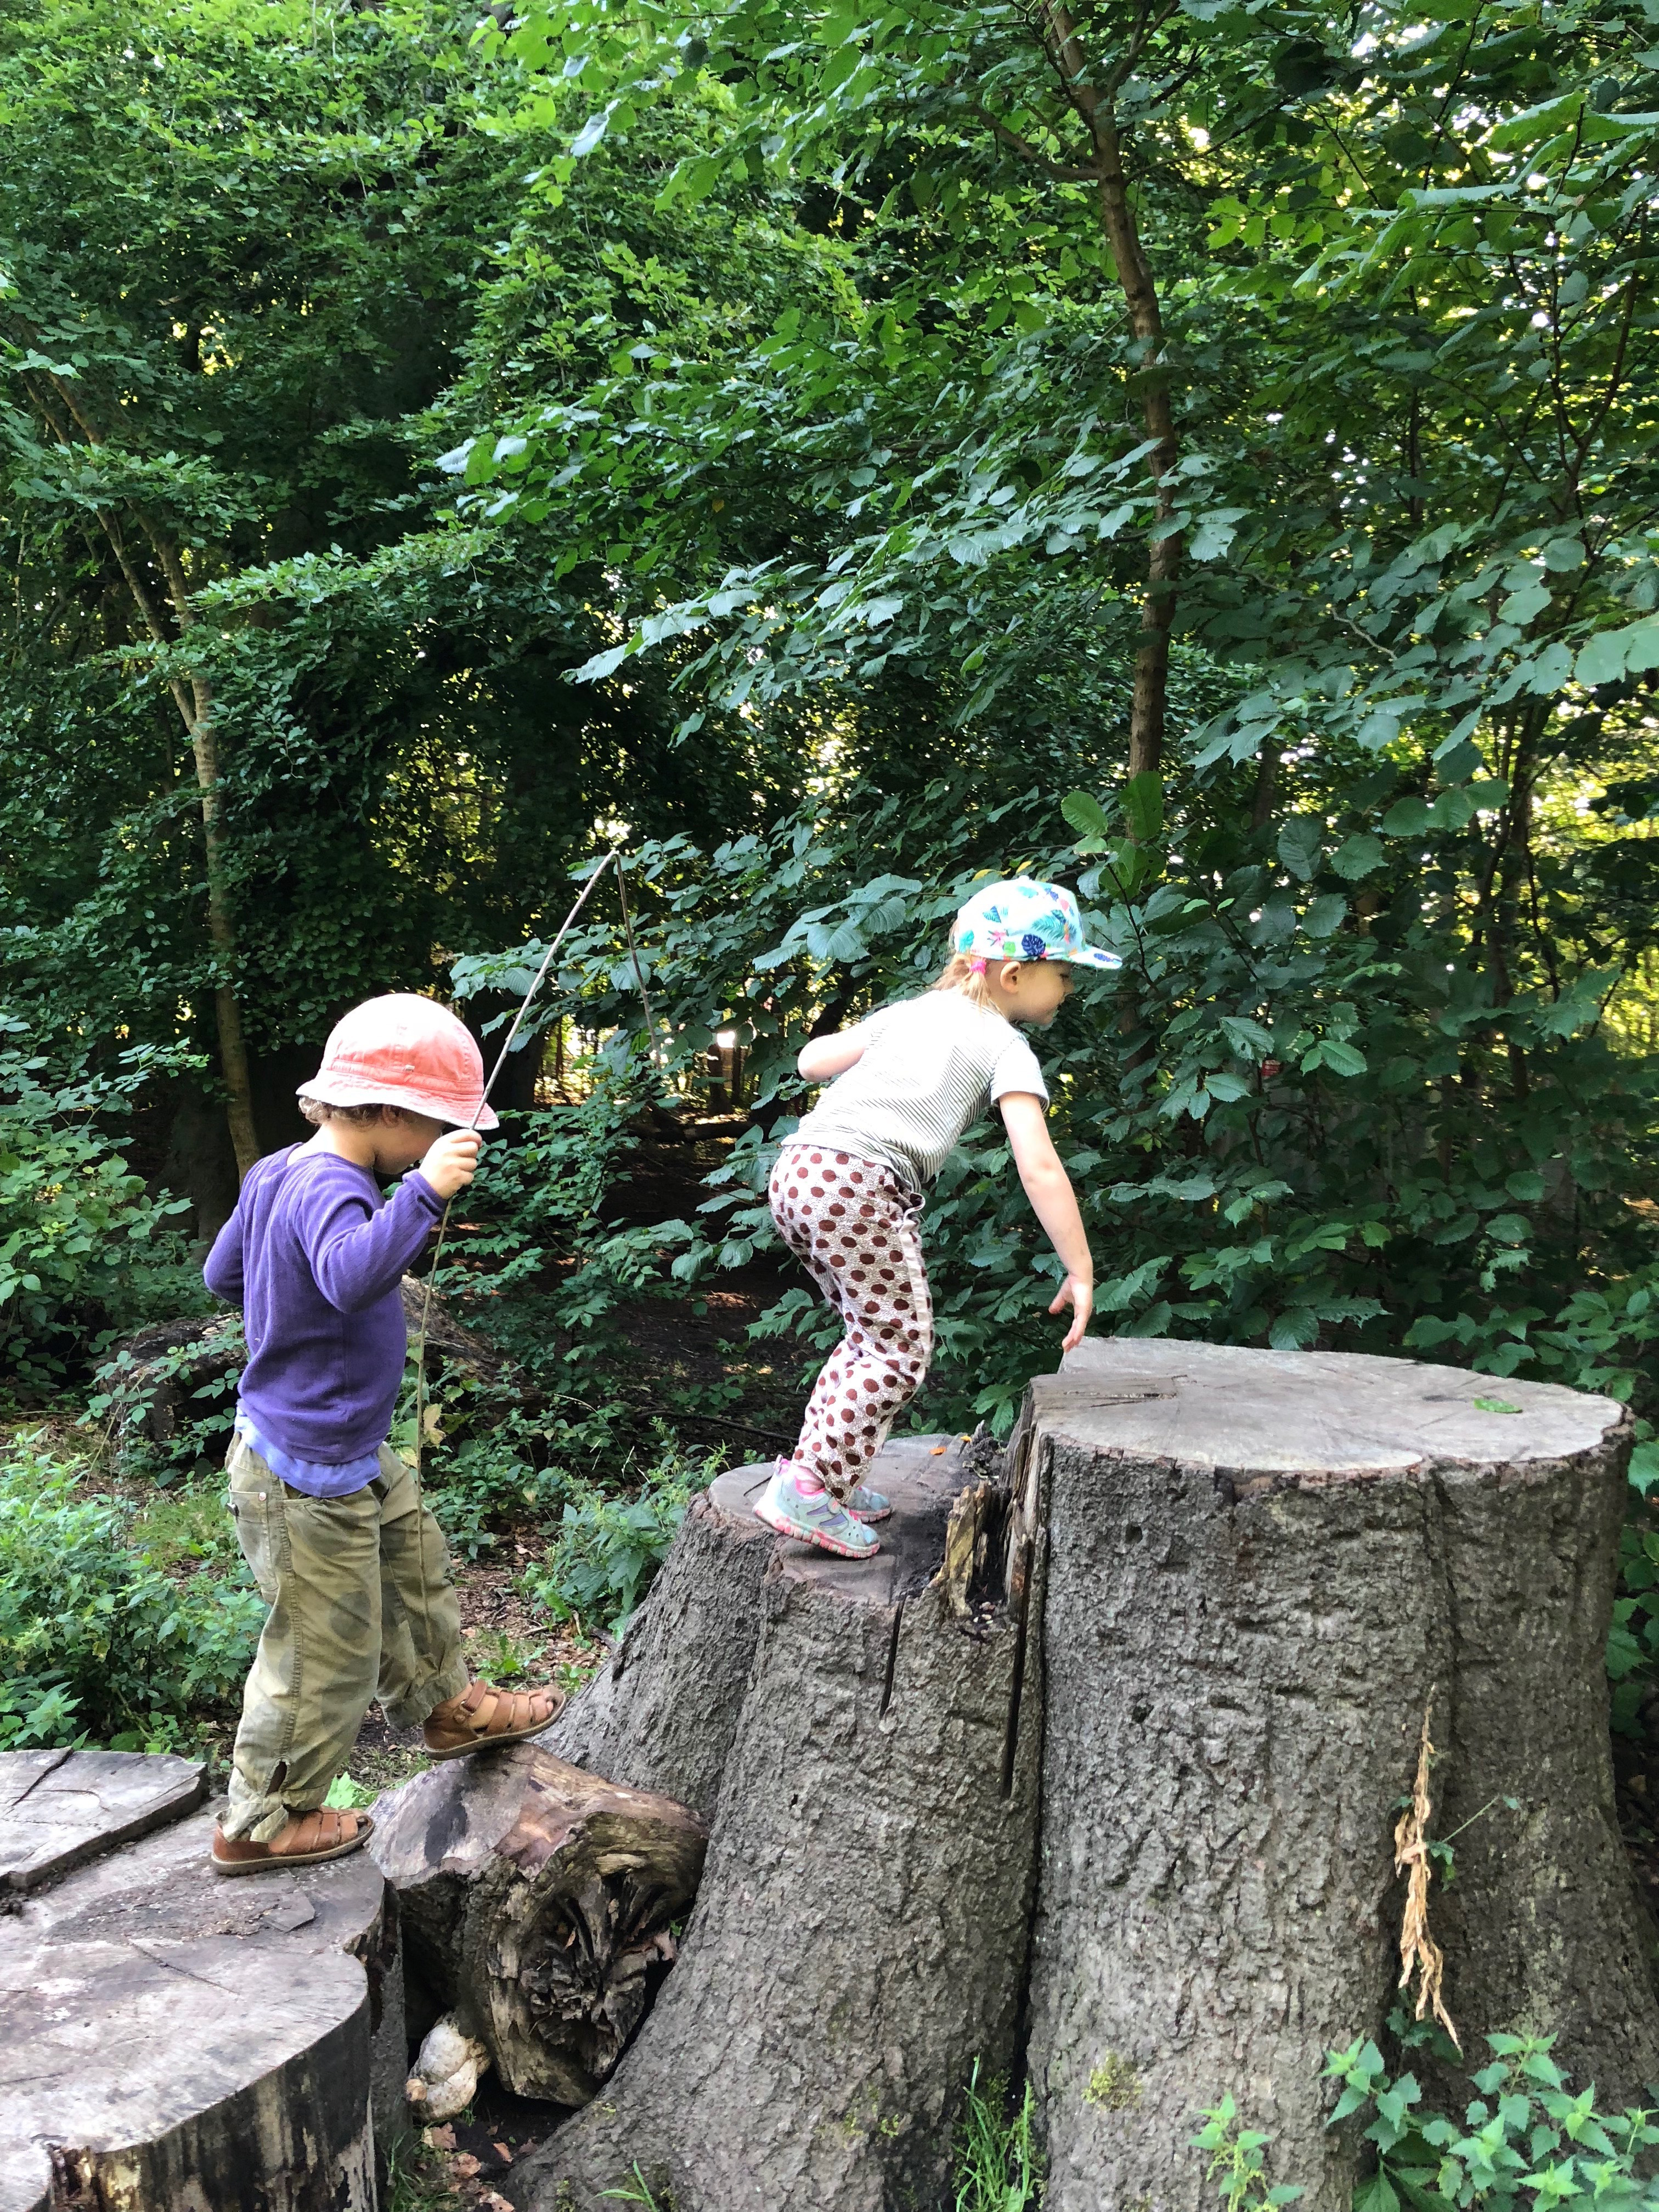 Children discover nature in the open air Game - Photo by Rikke Rosengren